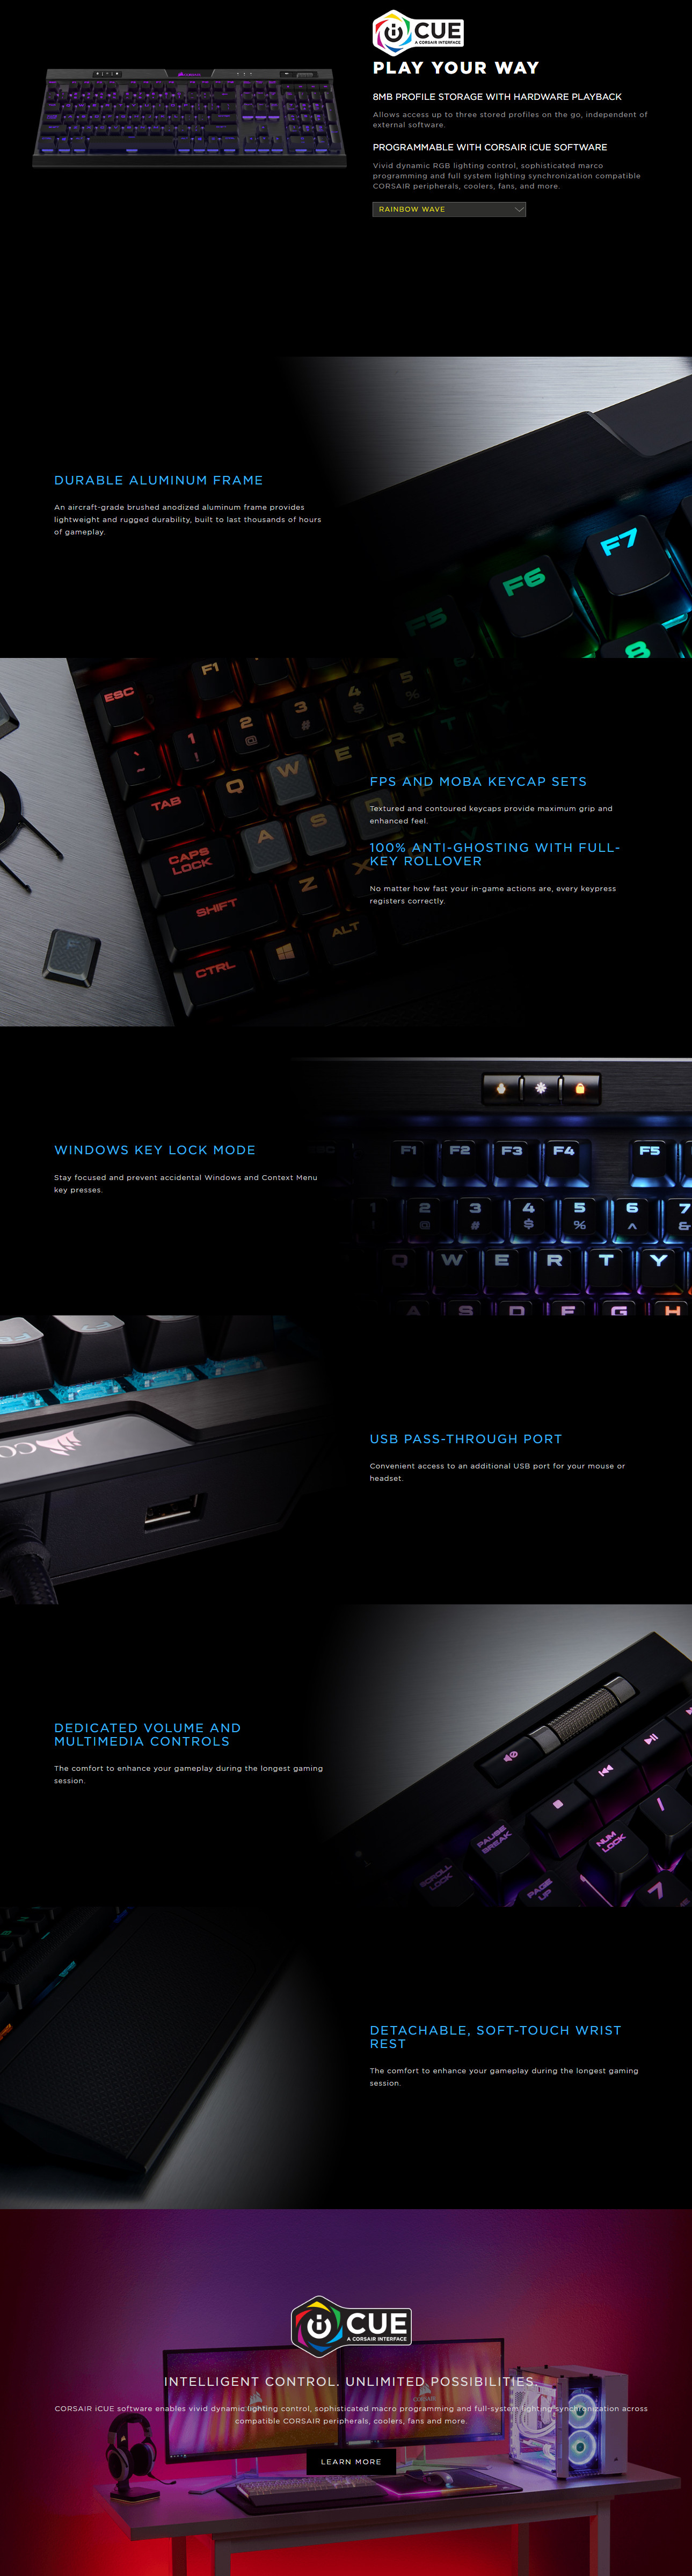 NEW Corsair K70 RGB MK.2 Mechanical Gaming Keyboard Cherry MX Silent  Backlit USB – PCLIVE Computer